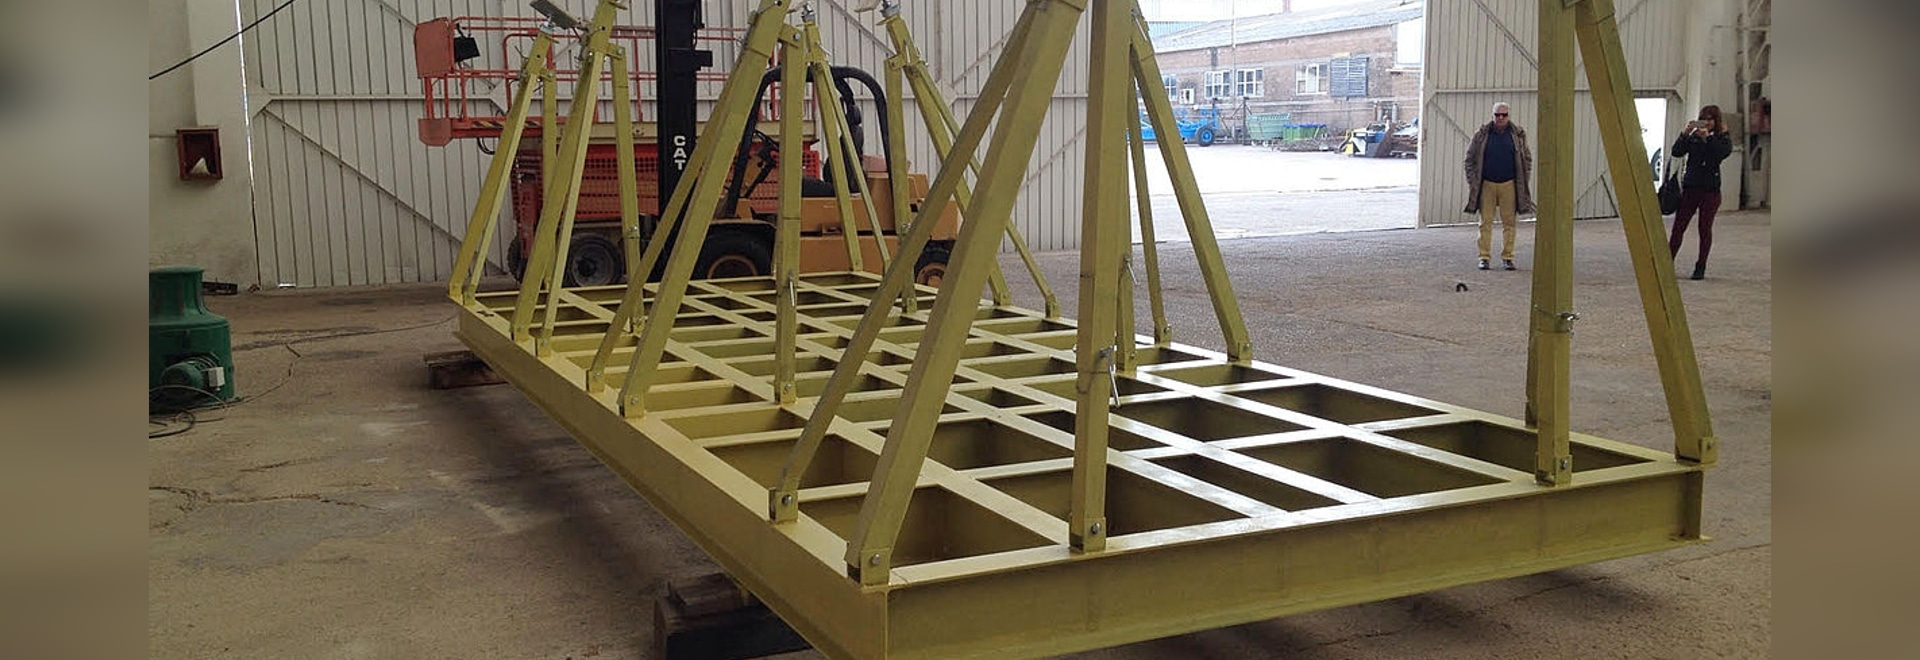 New construction of Cradles for Sailboats 50 tons!